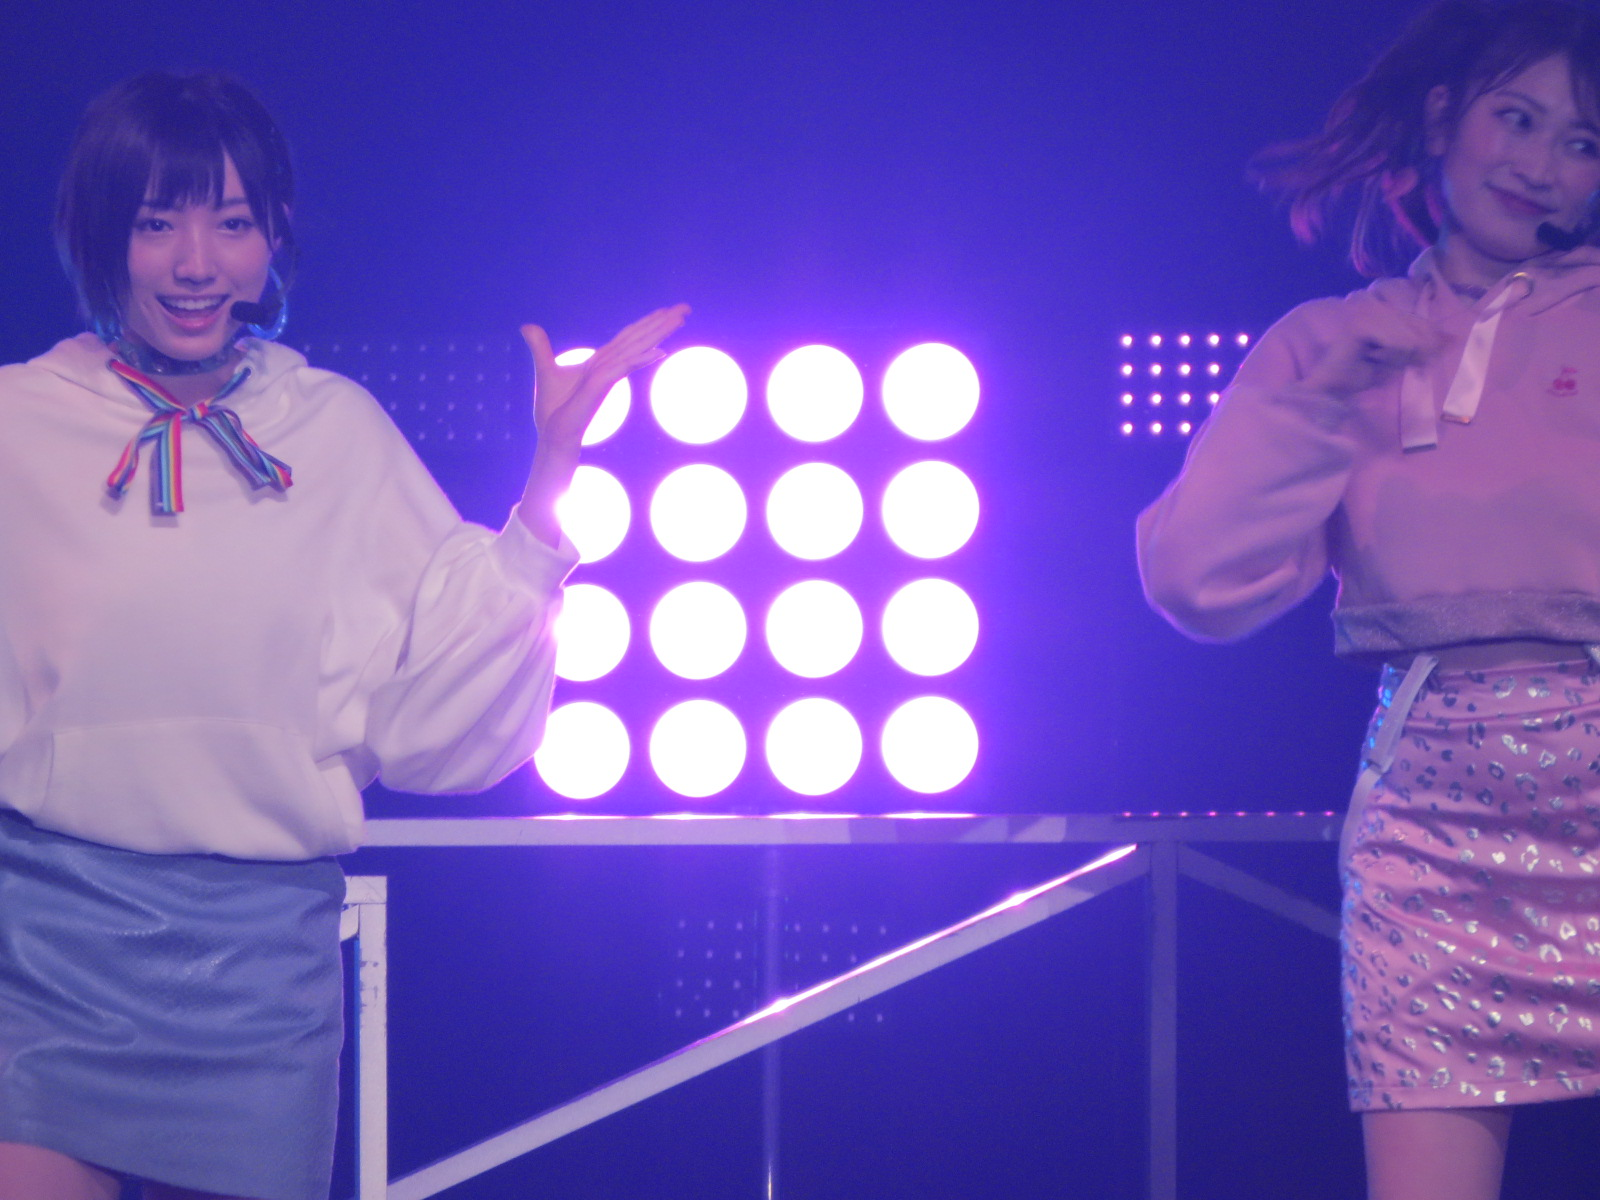 NMB48 LIVE TOUR 2018 in Summer・石川公演の画像-064